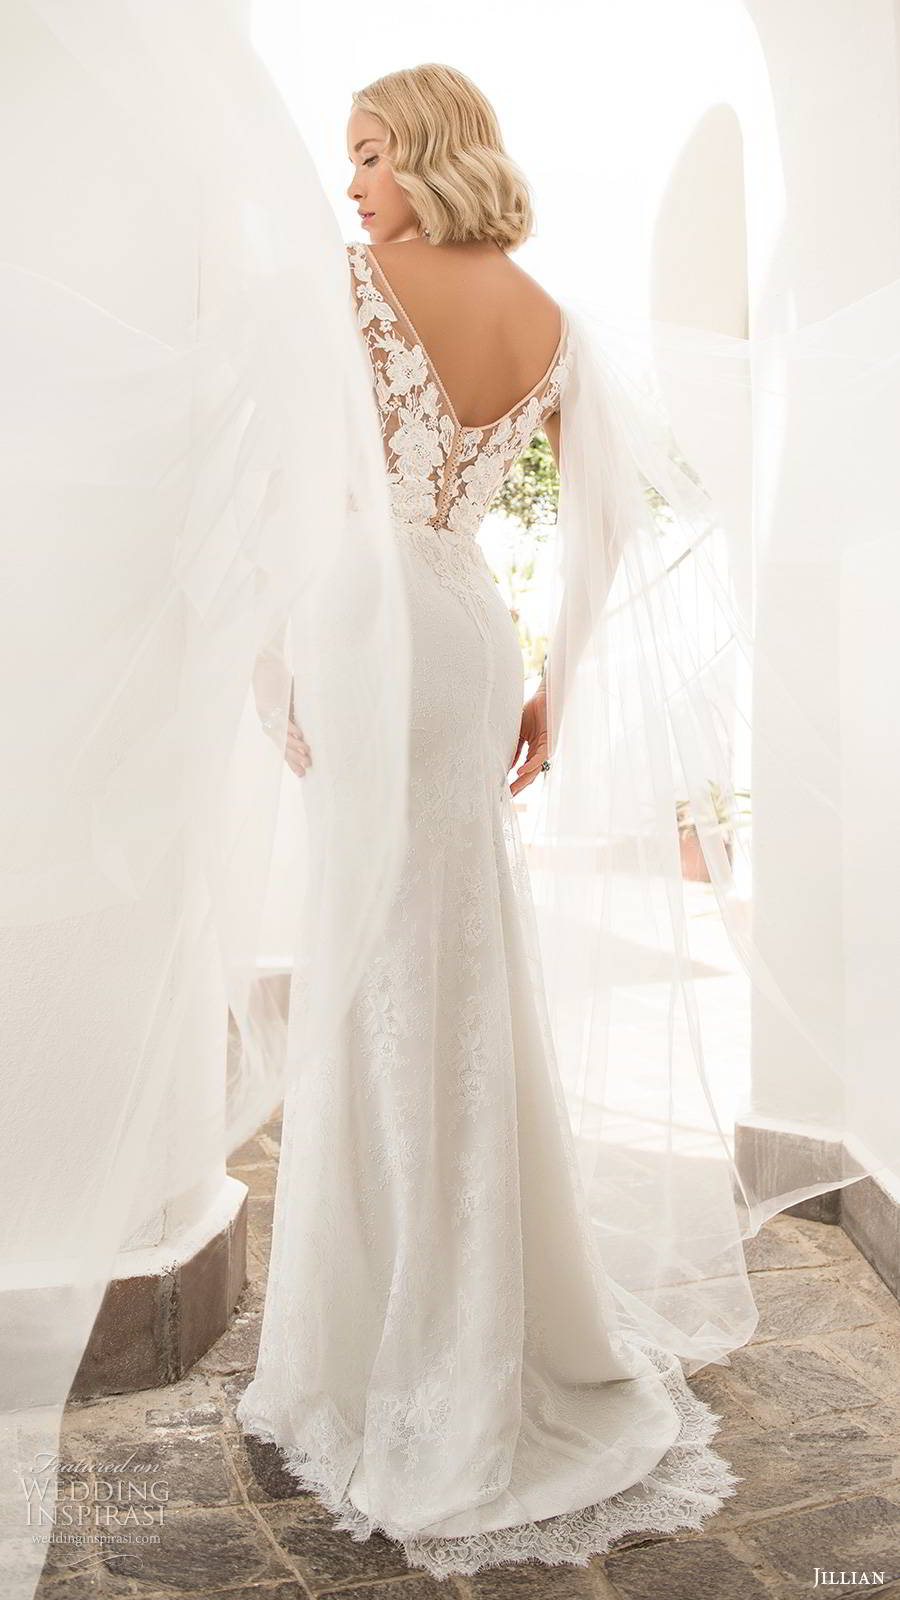 jillian sposa 2020 bridal illusion long flutter sleeves plunging v neckline slit skirt elegant glam lace fit flare wedding dress chapel train (1) bv